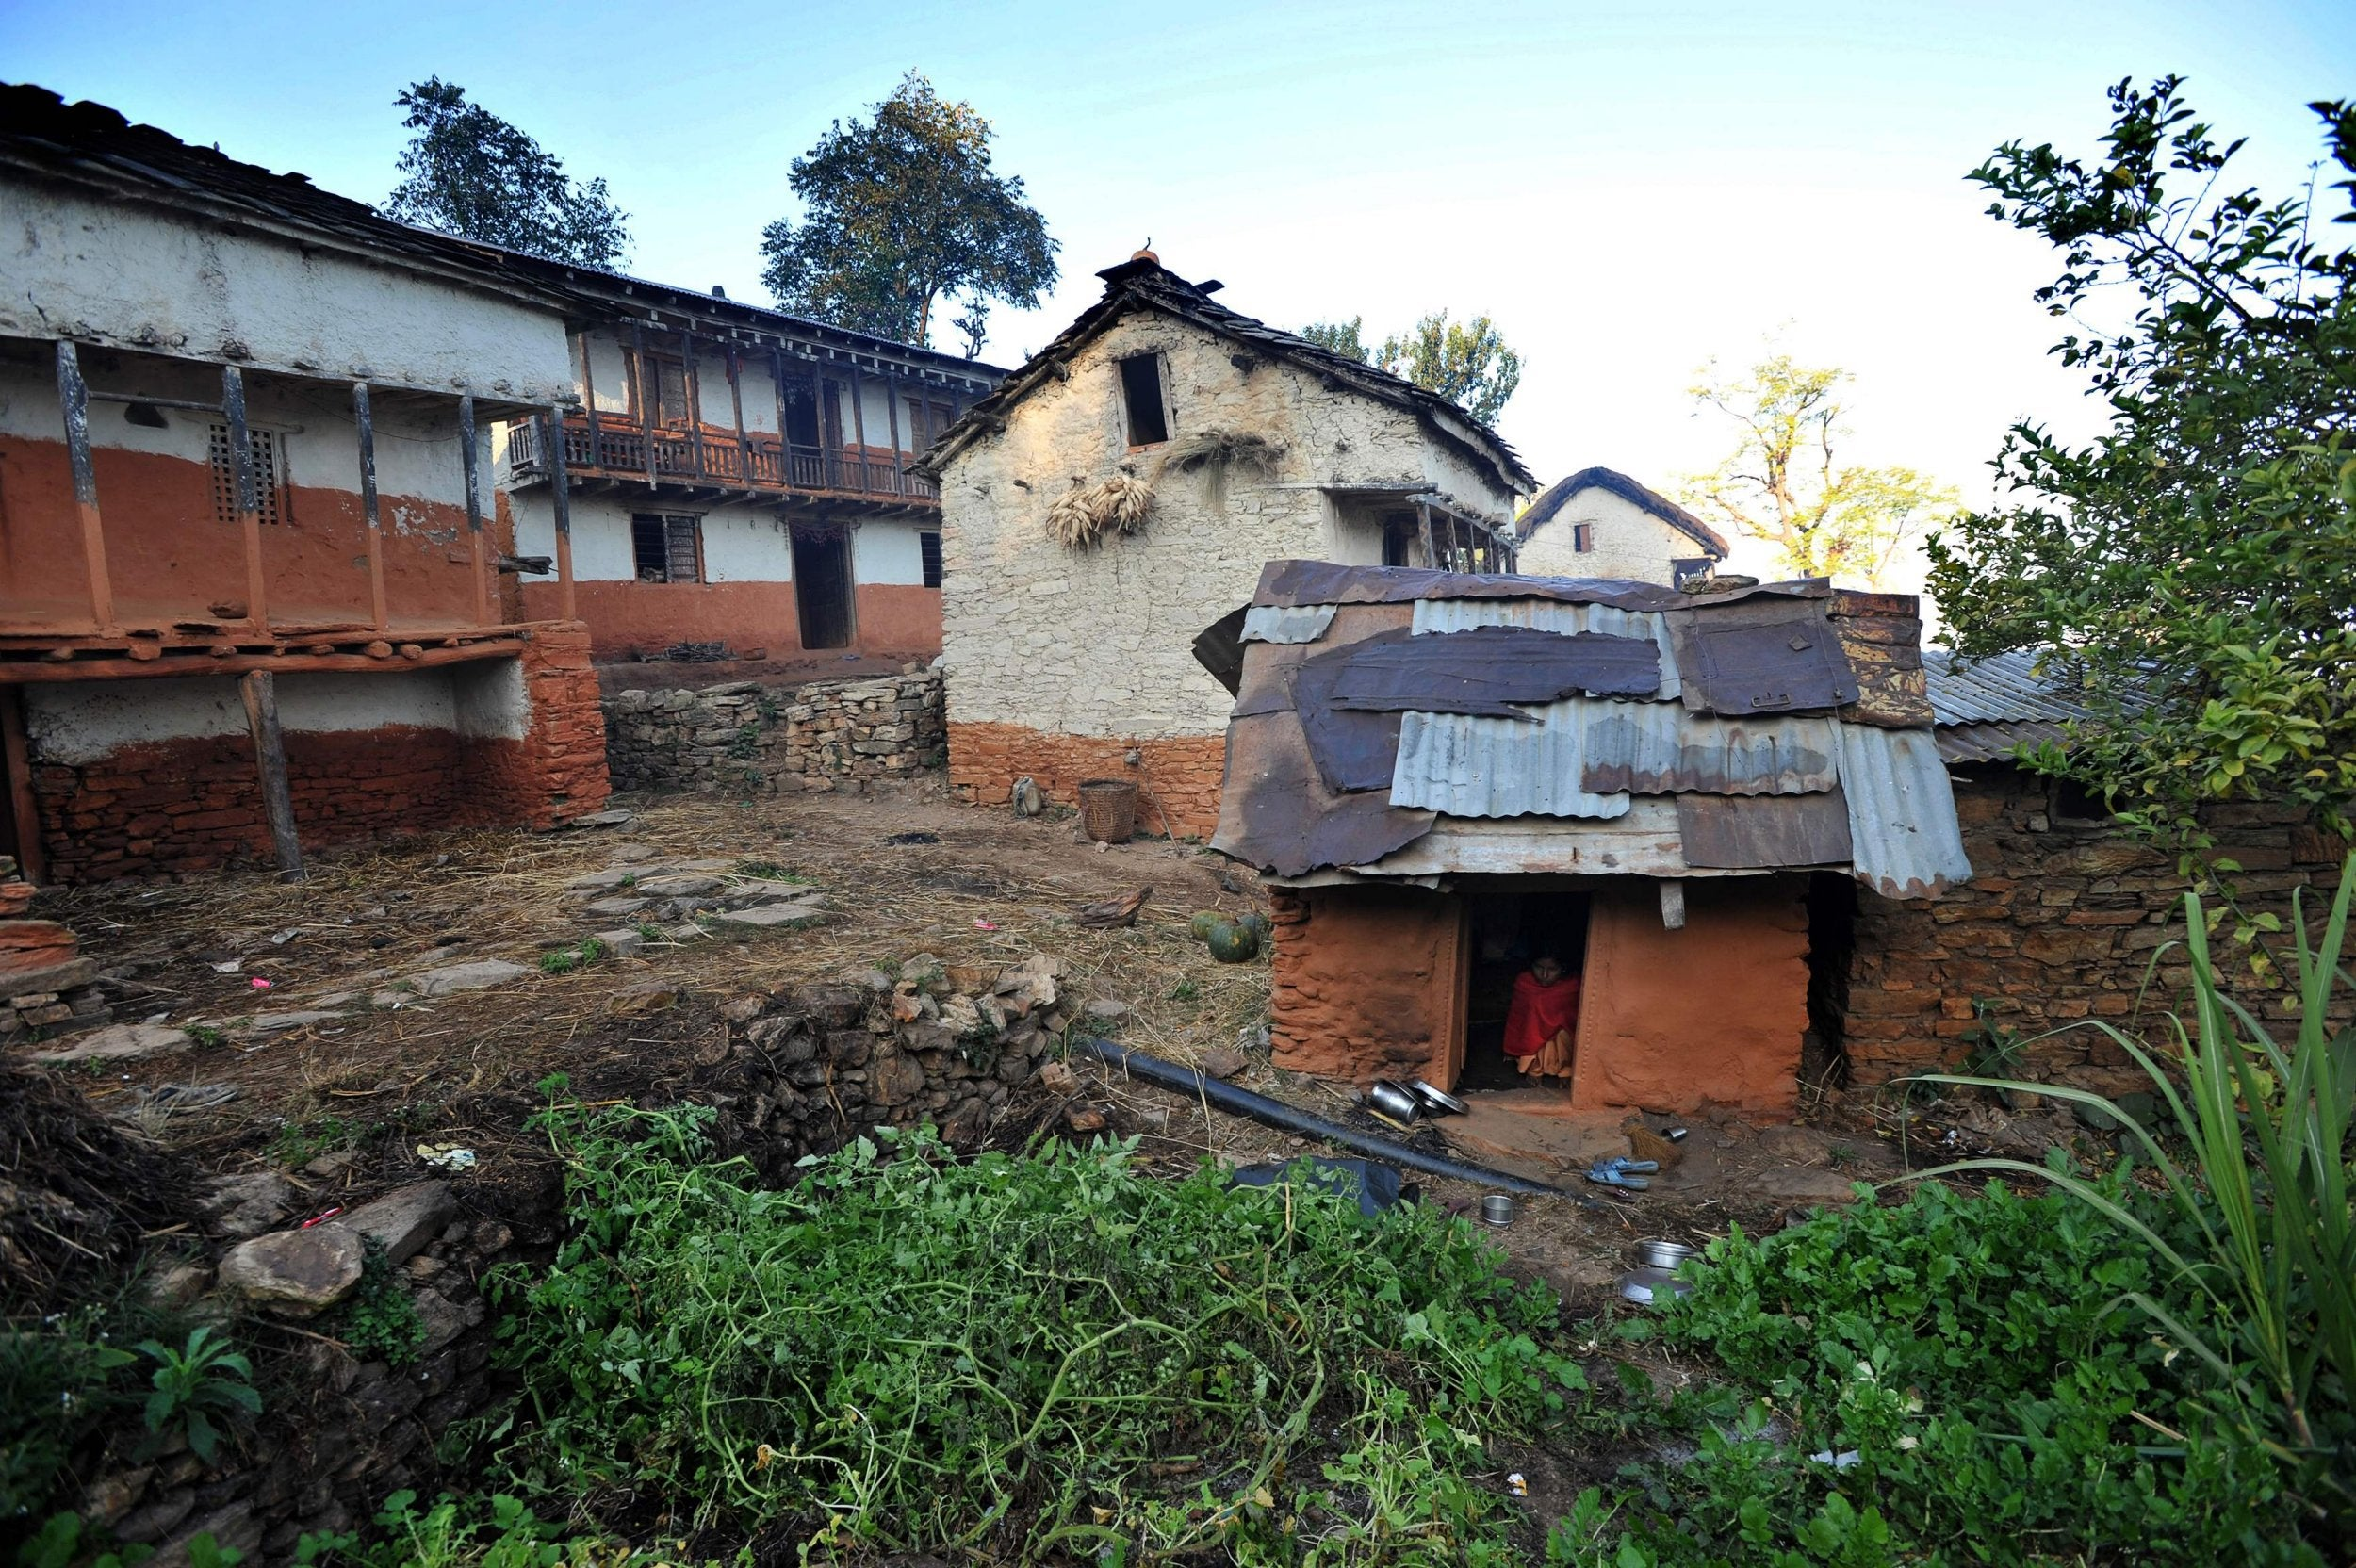 Nepalese woman and her children die in hut after being banished for menstruating